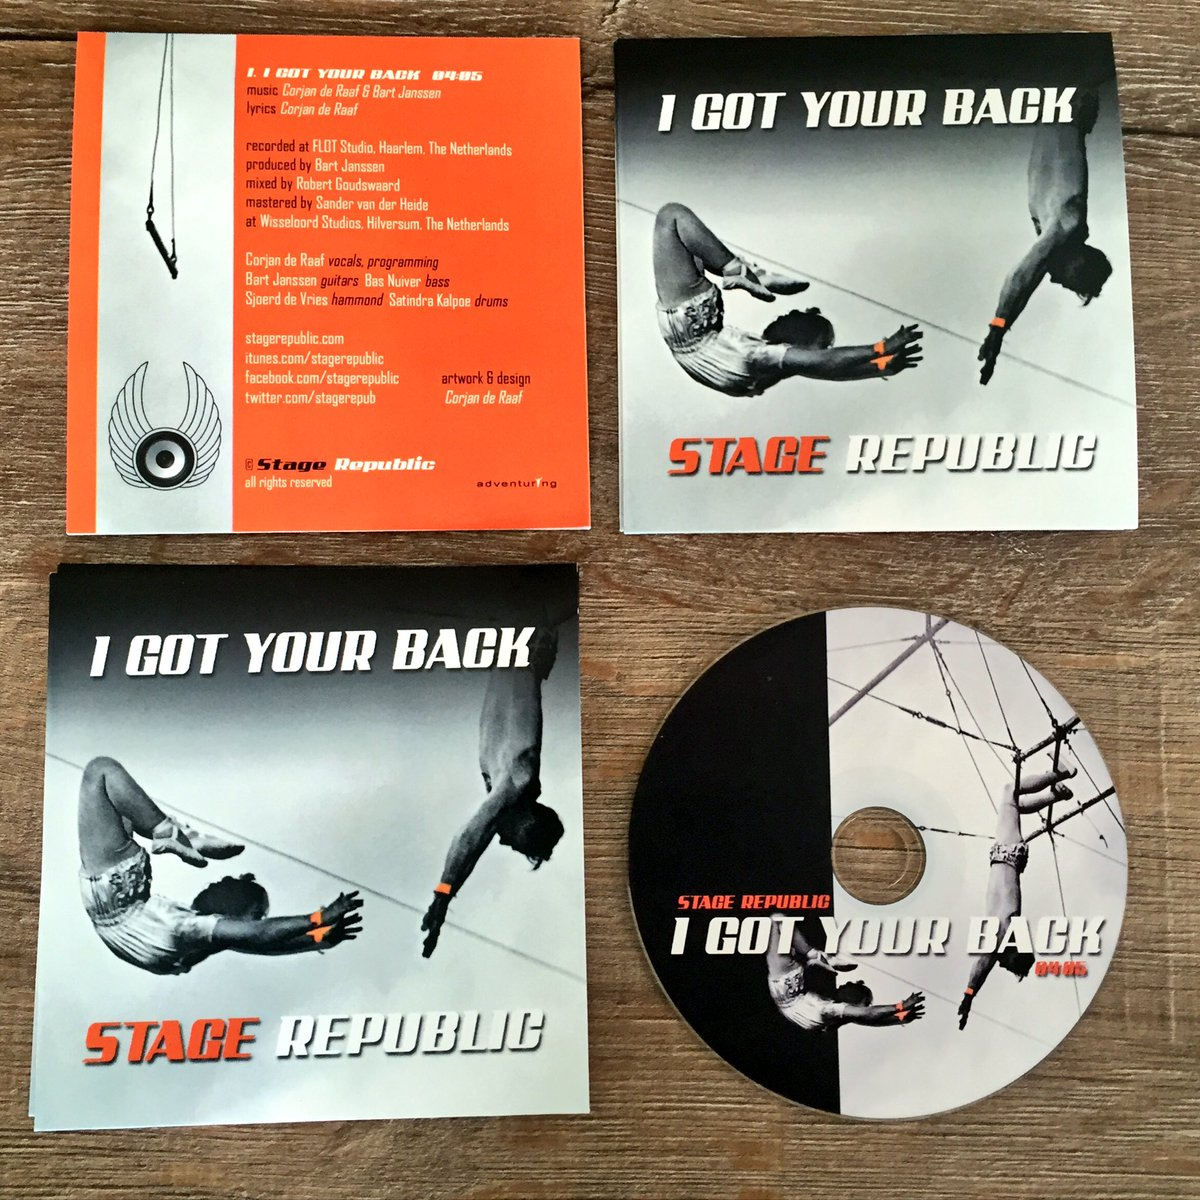 I Got Your Promo CD's. How undigital #newmusic #indie https://t.co/ERueqa3nkL